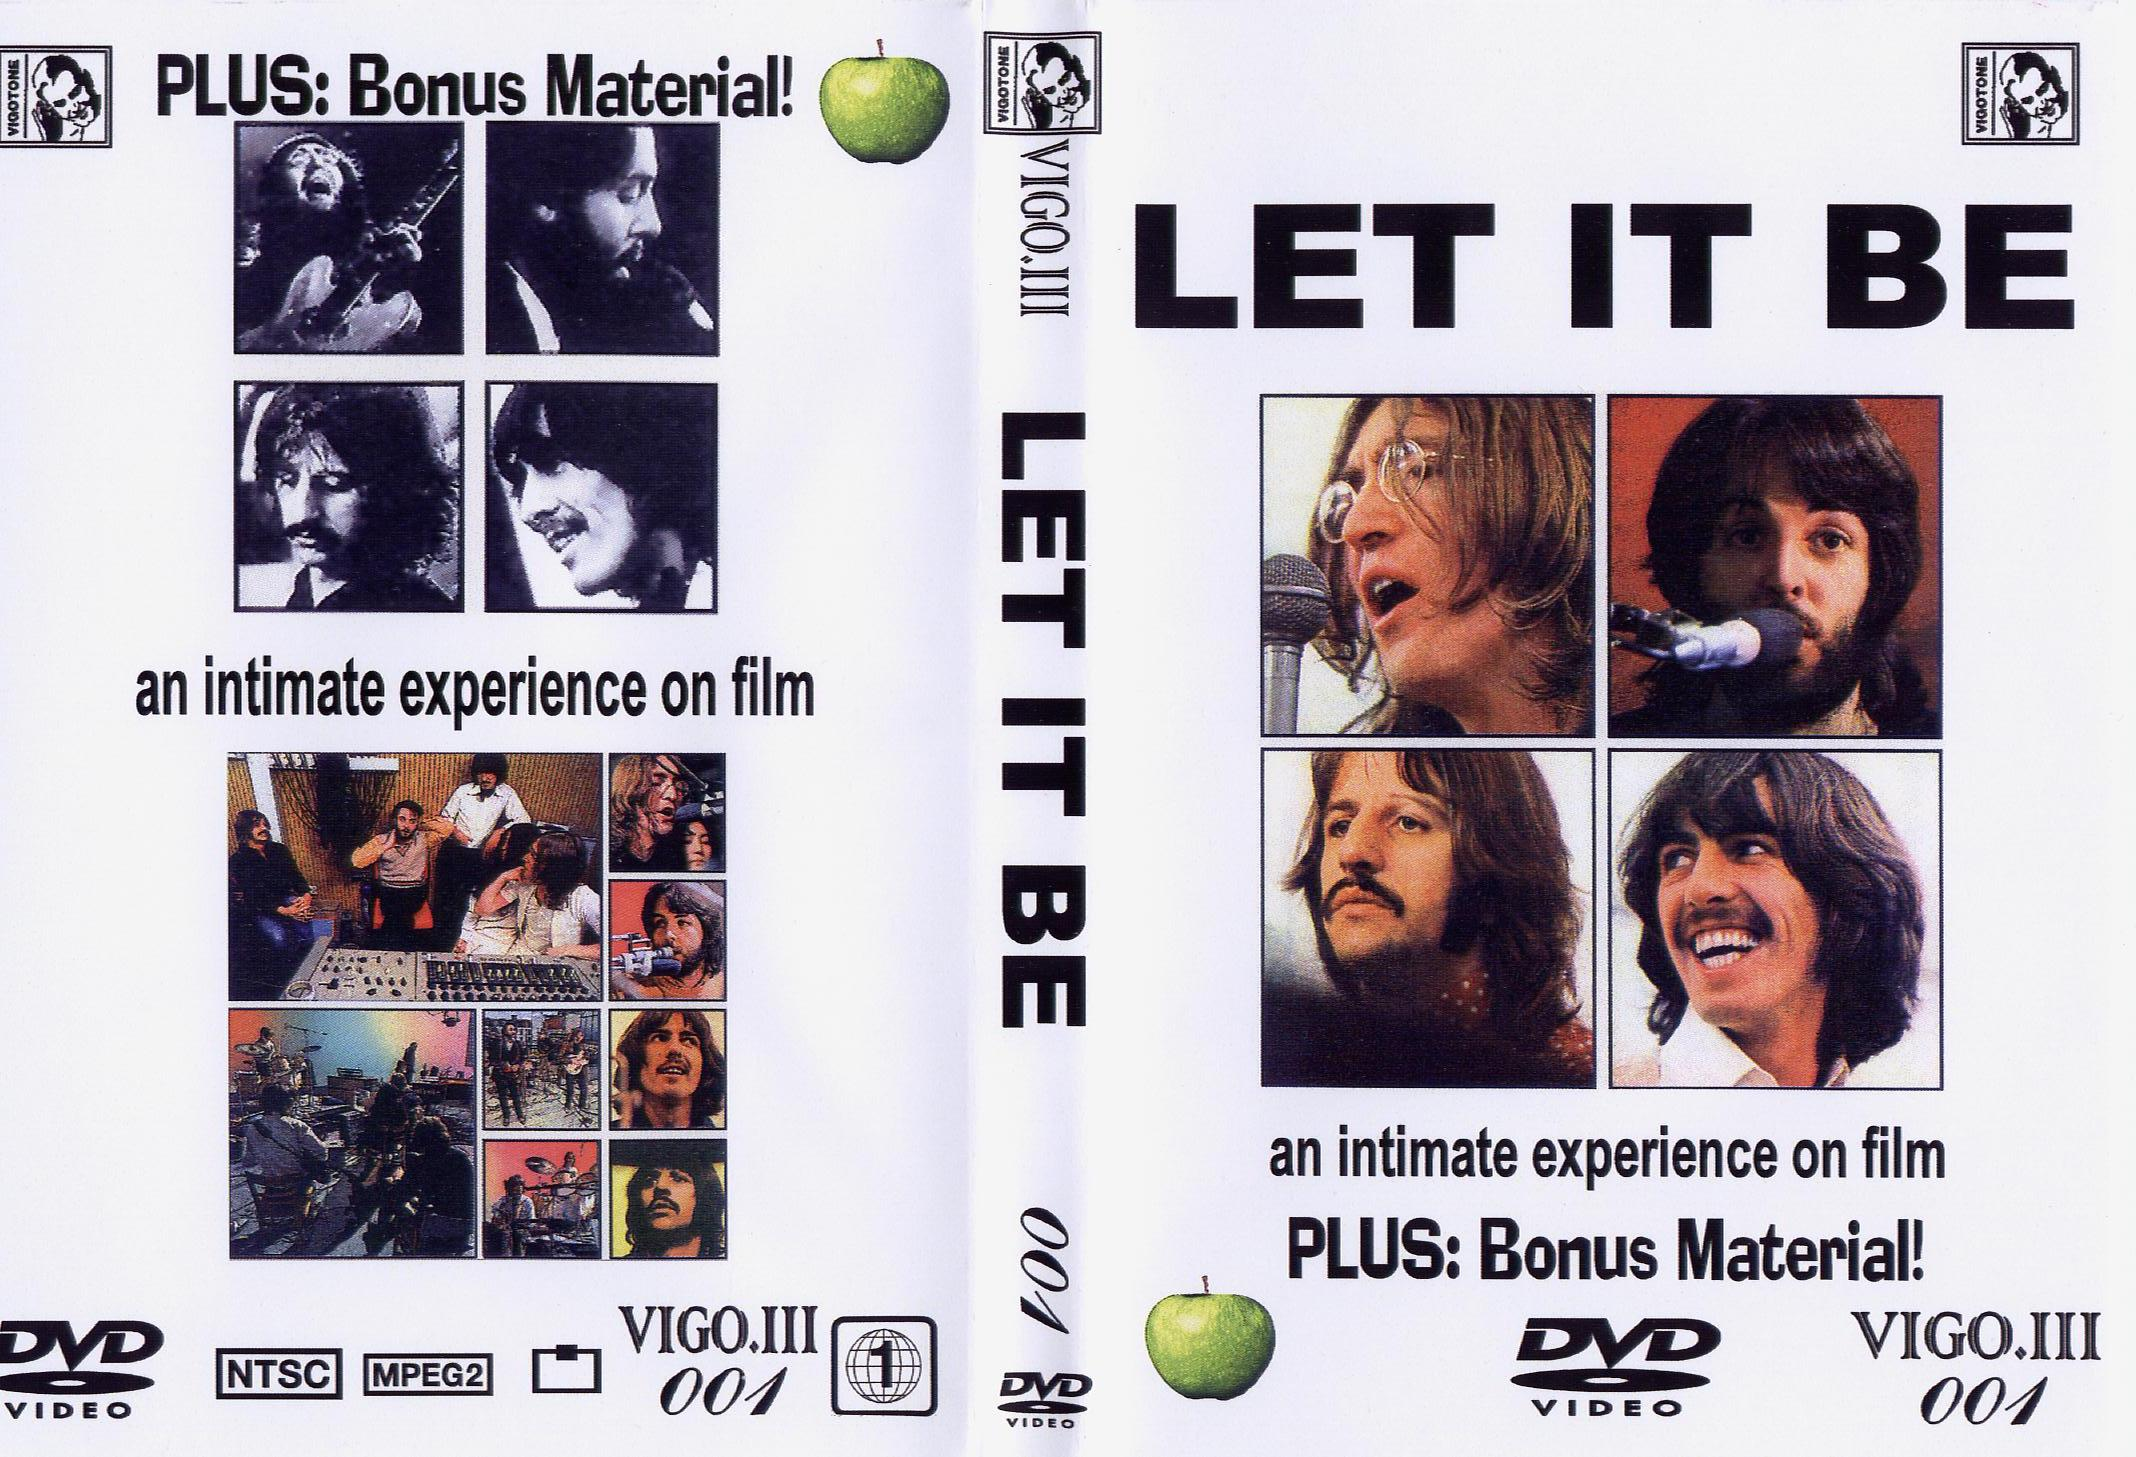 Beatles - Let It Be dvd cover art.jpg